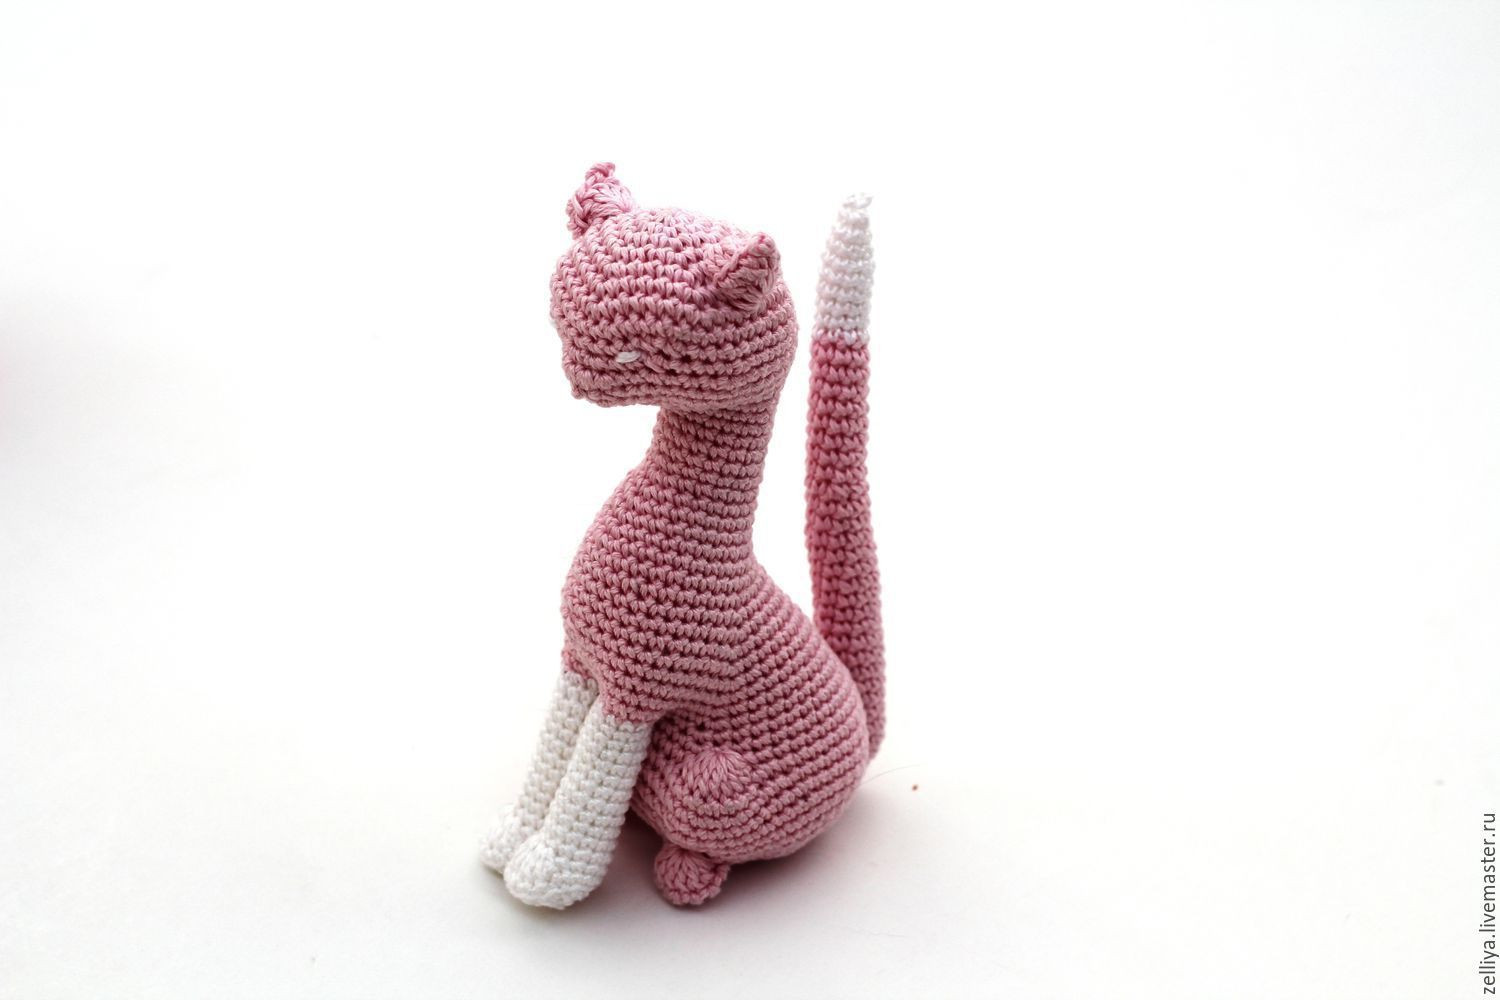 Best Of Cat Knitted Marquis Knitted toy Cat Kitty Kitten as A Knitted Cat toys Of Fresh 44 Pics Knitted Cat toys